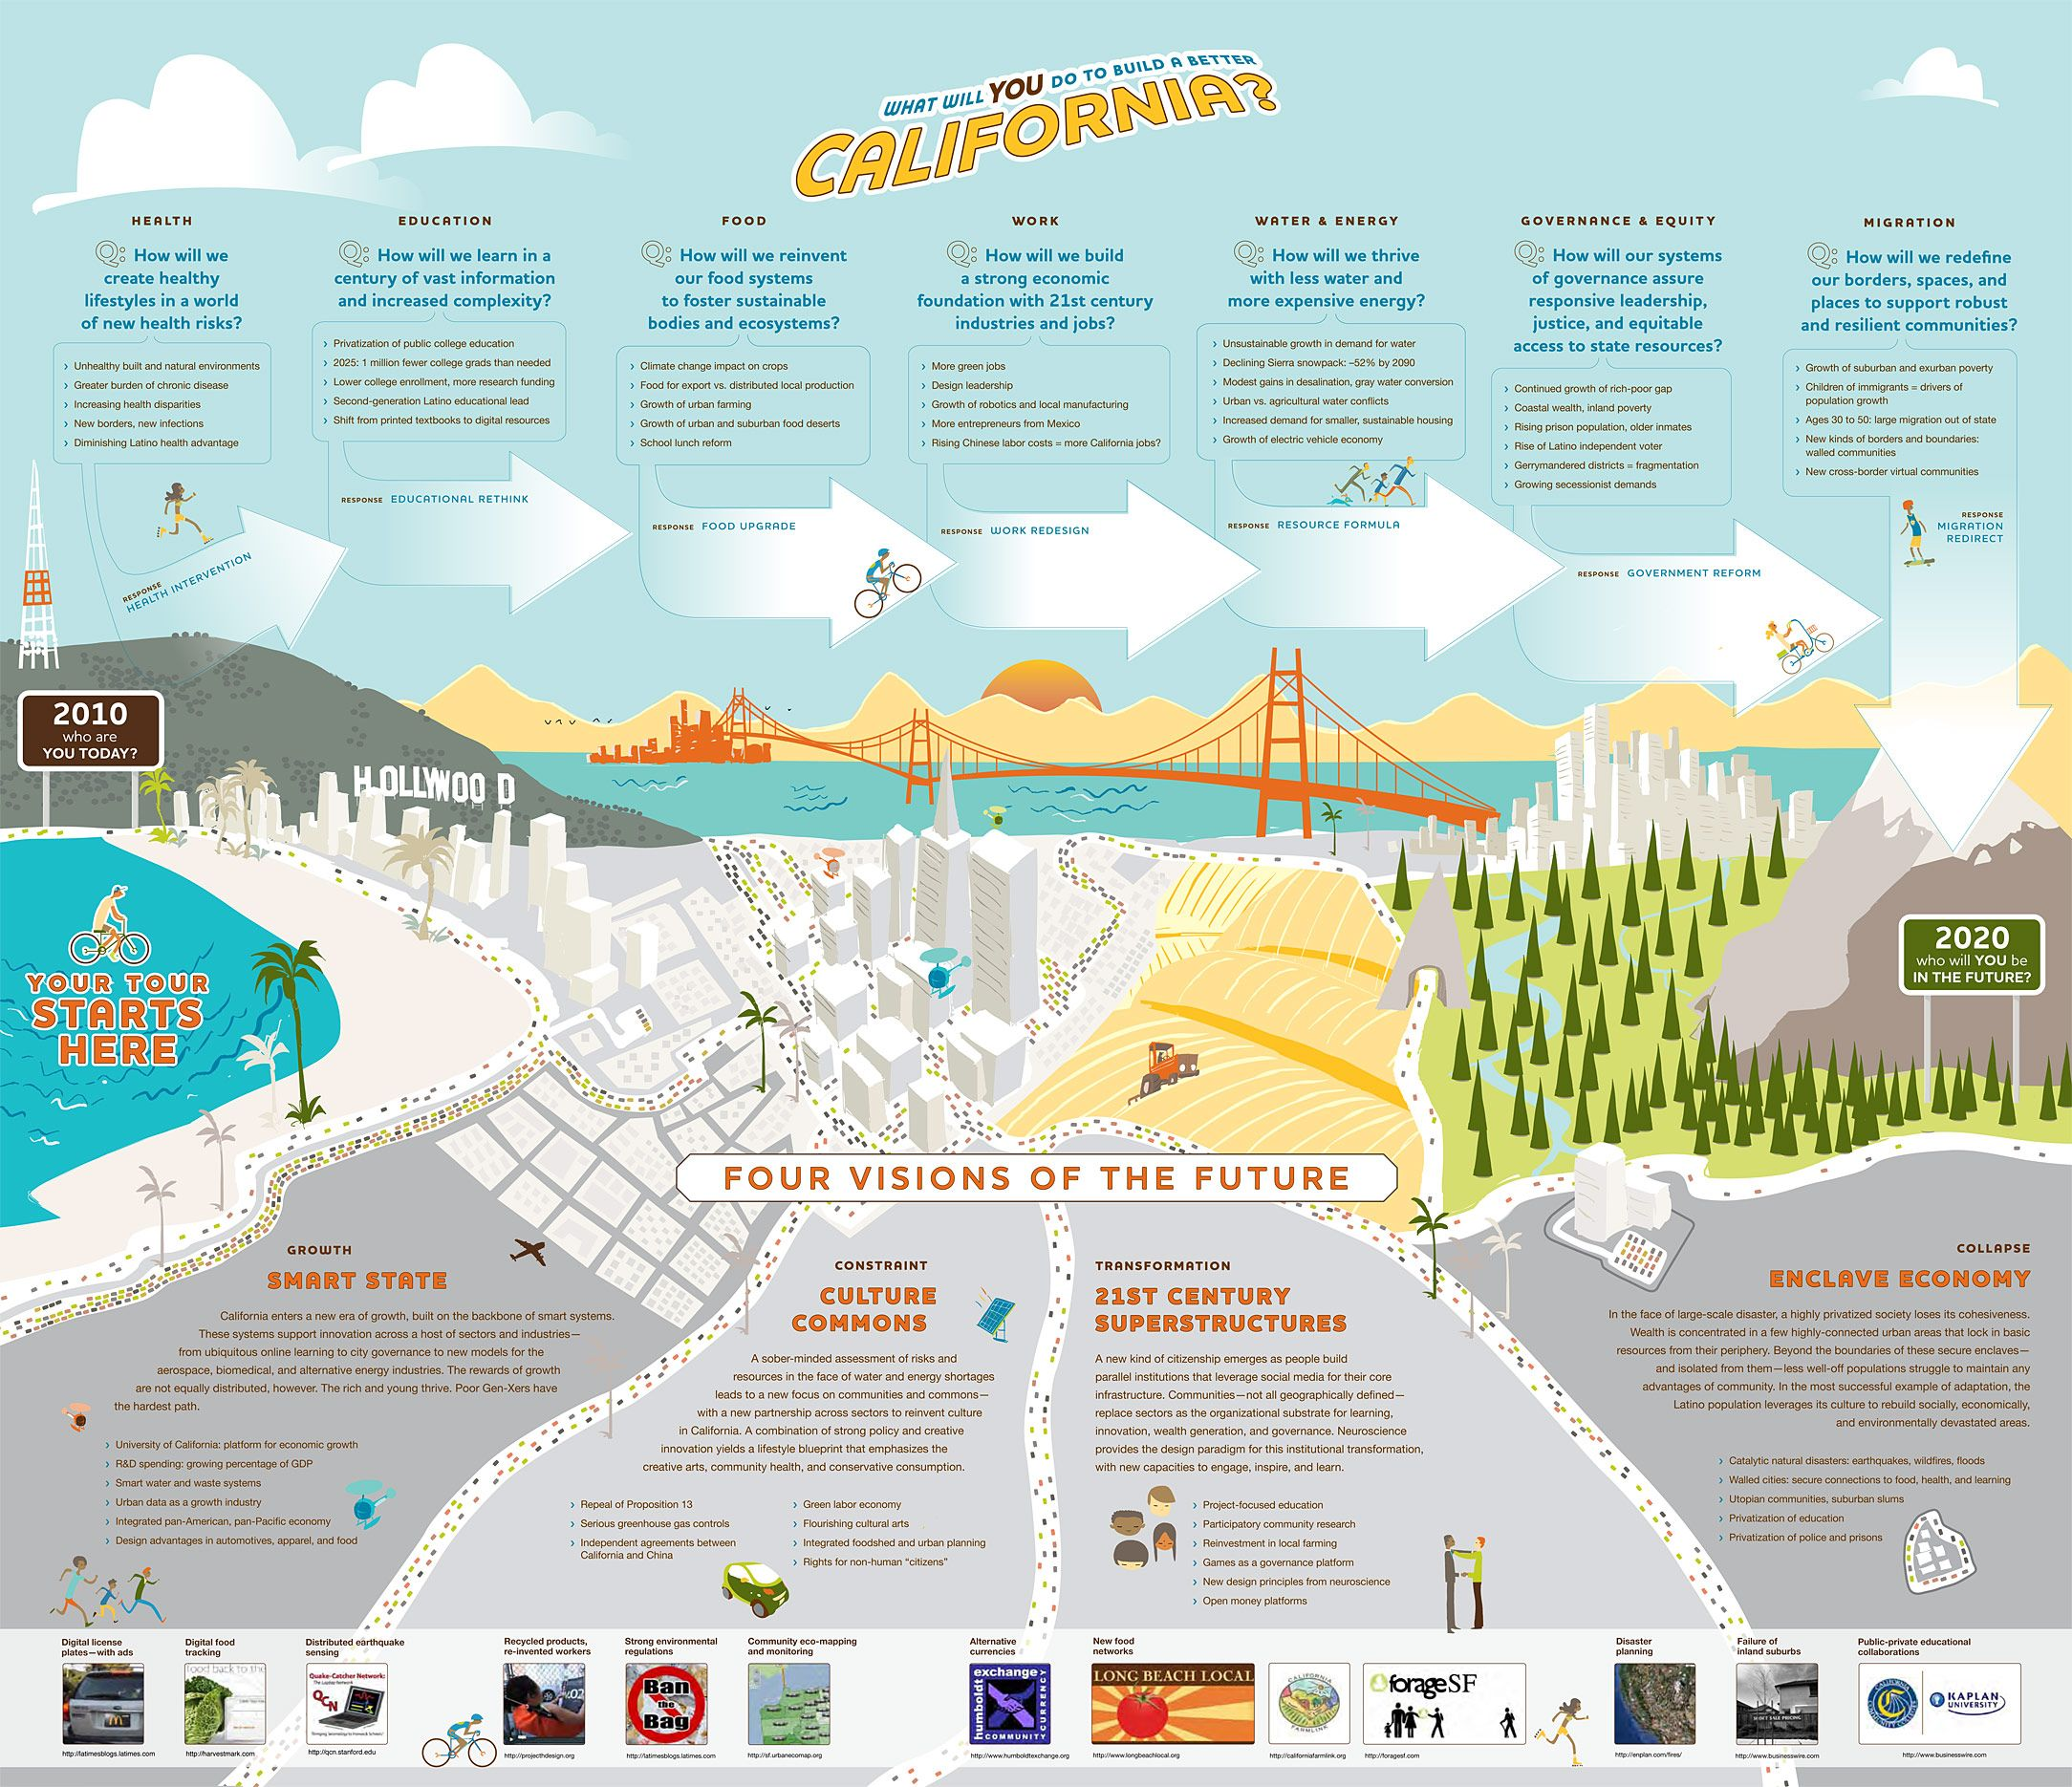 Bodies Of Water In California Map.Institute For The Future Ca Map Ca Water Related California Map